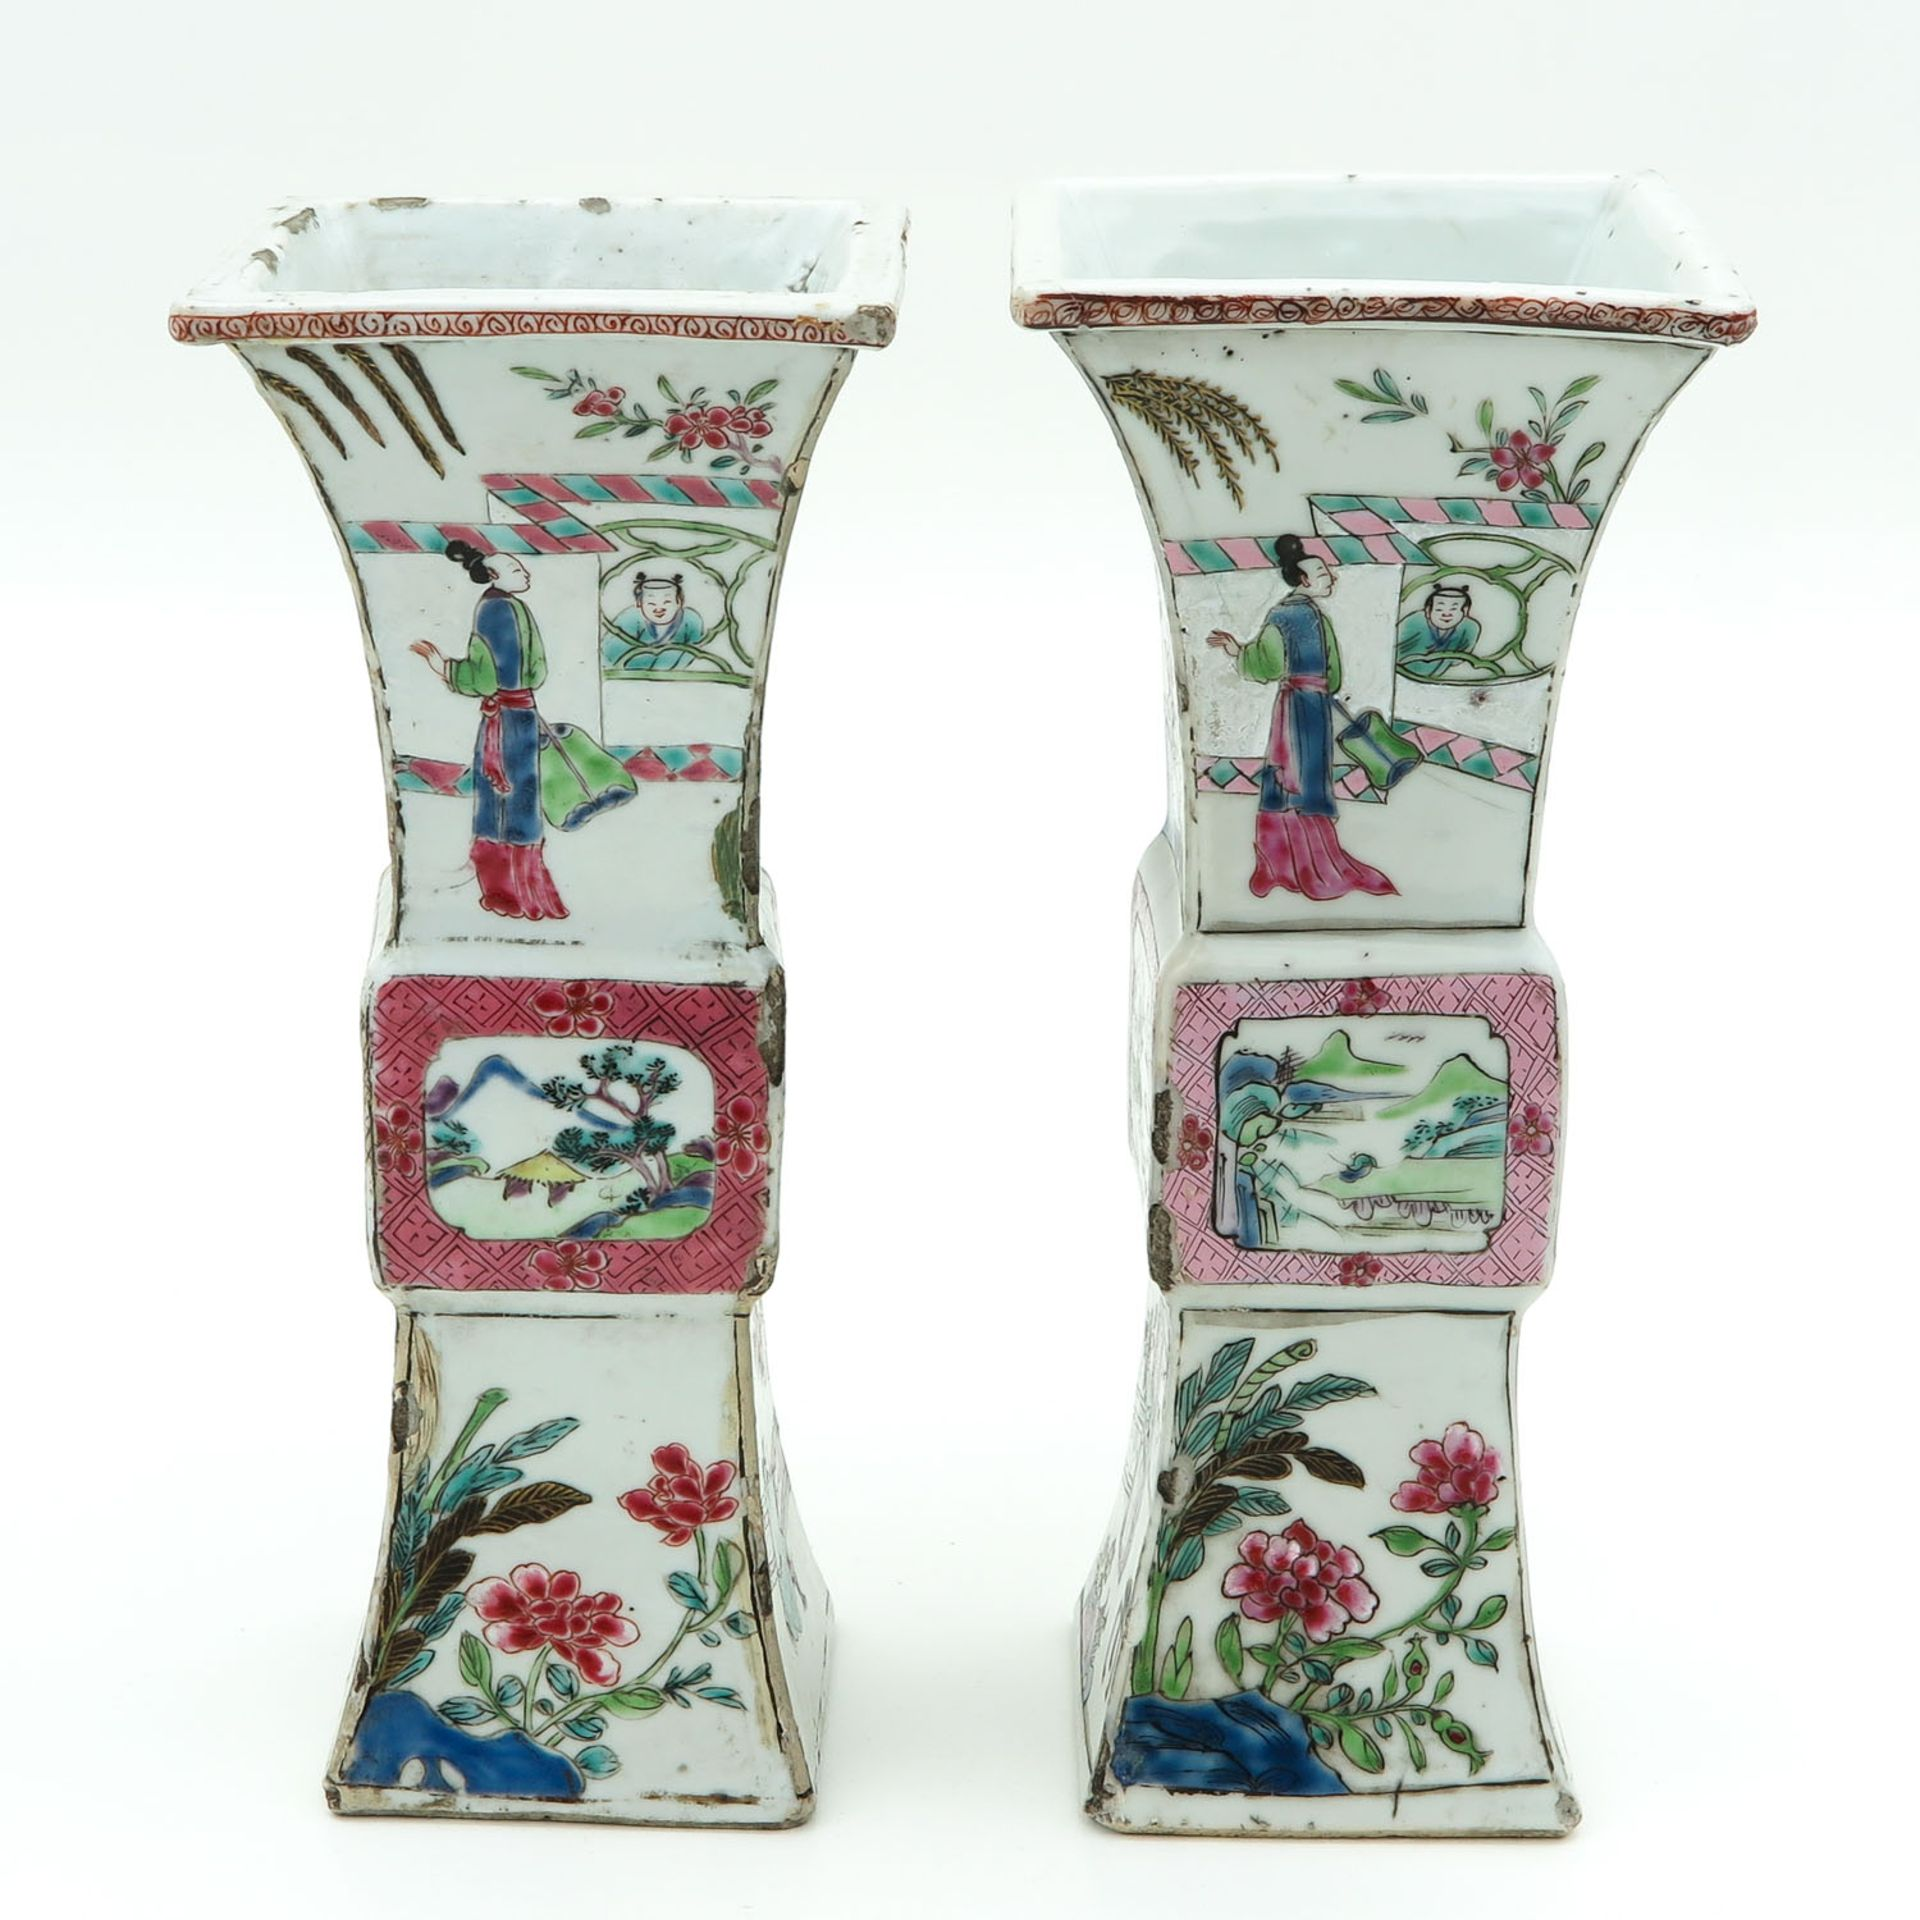 Los 7087 - A Pair of Famille Rose Square Gu Vases